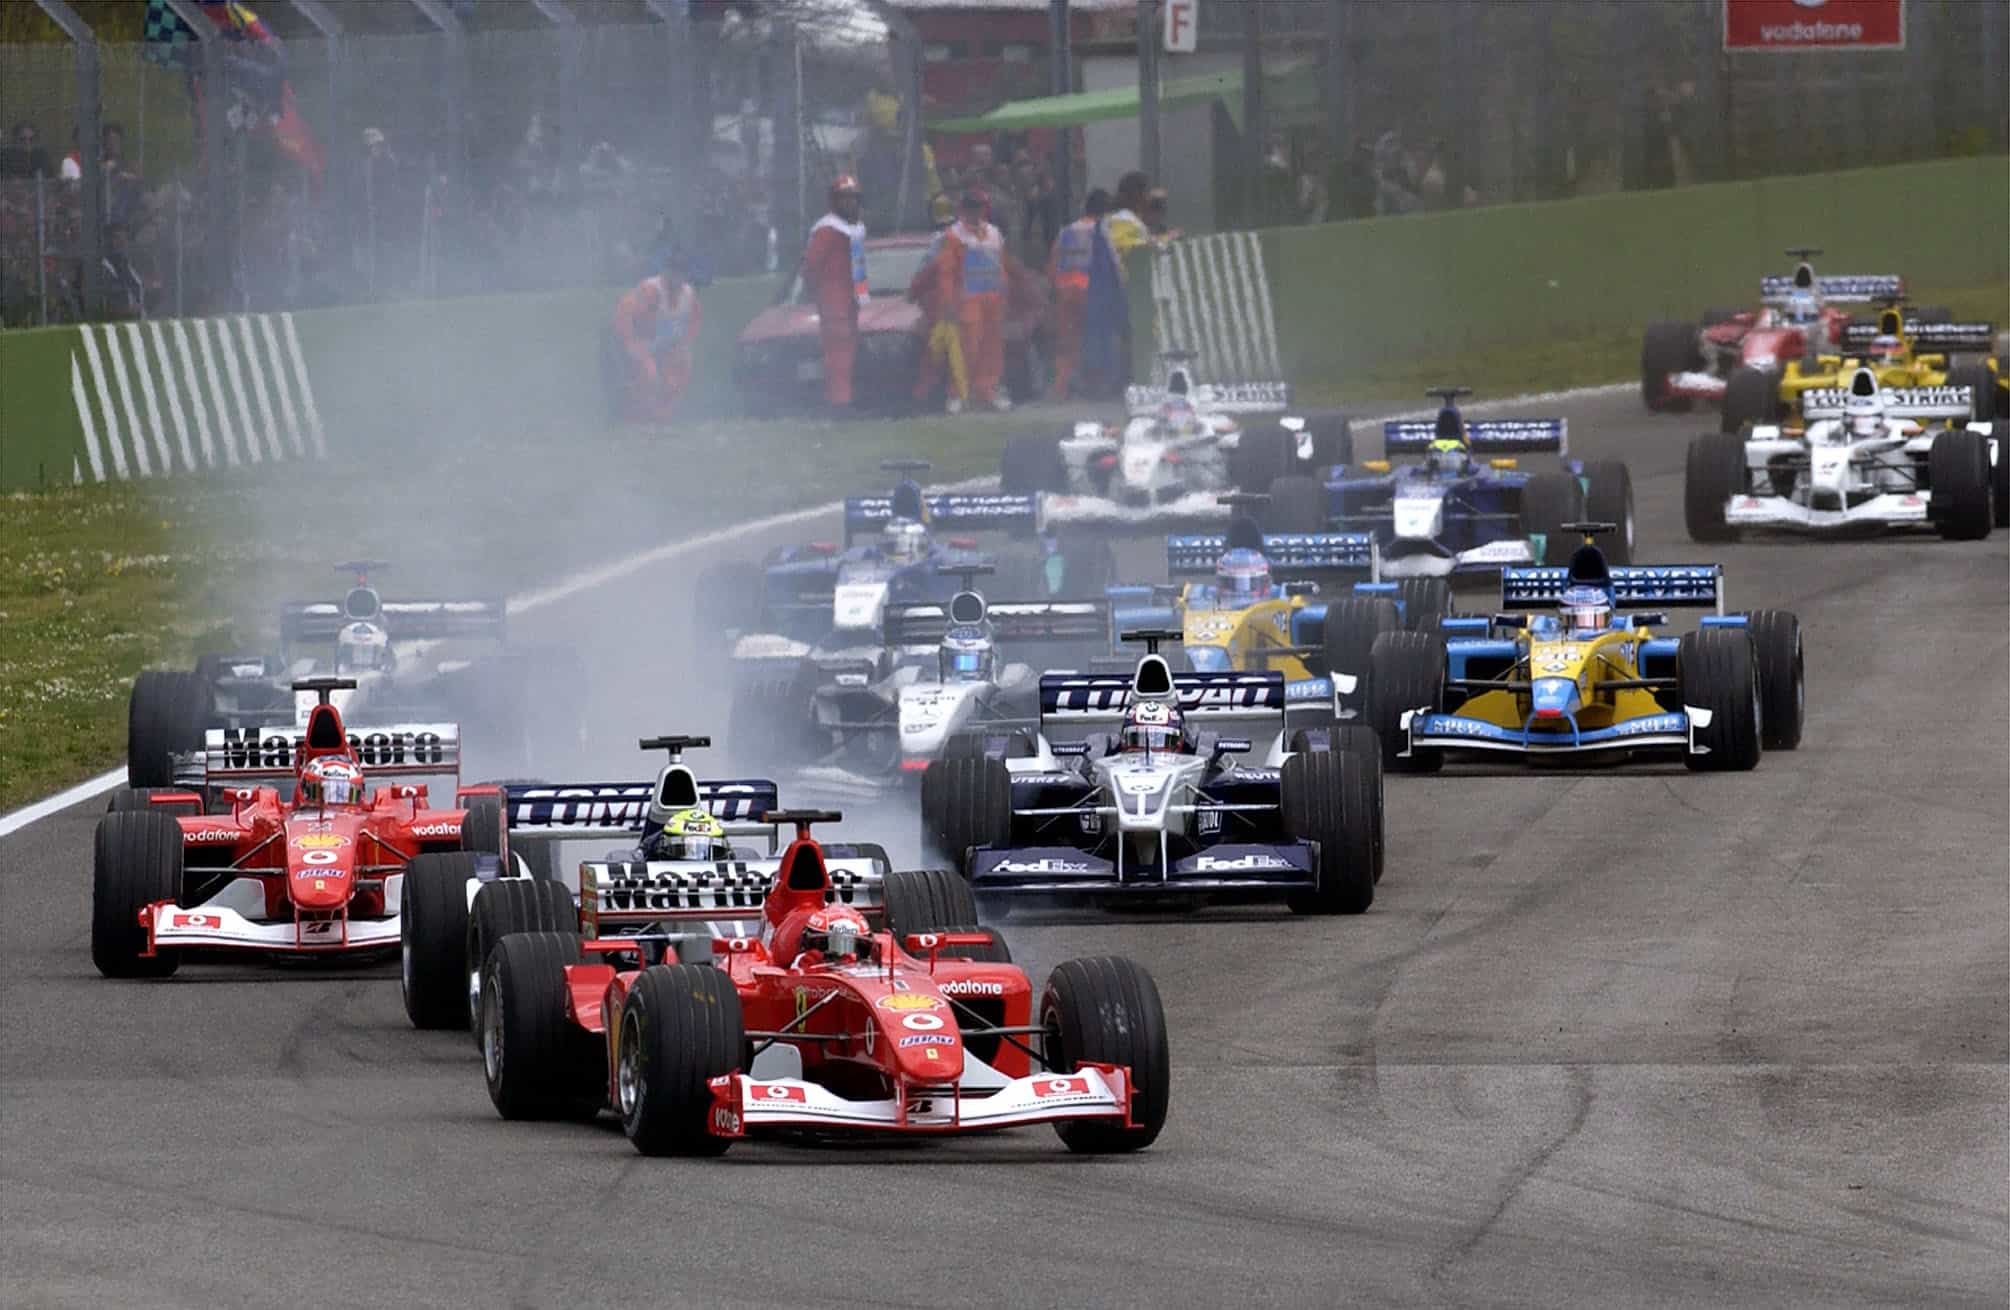 2002 F1 San Marino GP Imola start Photo Ferrari